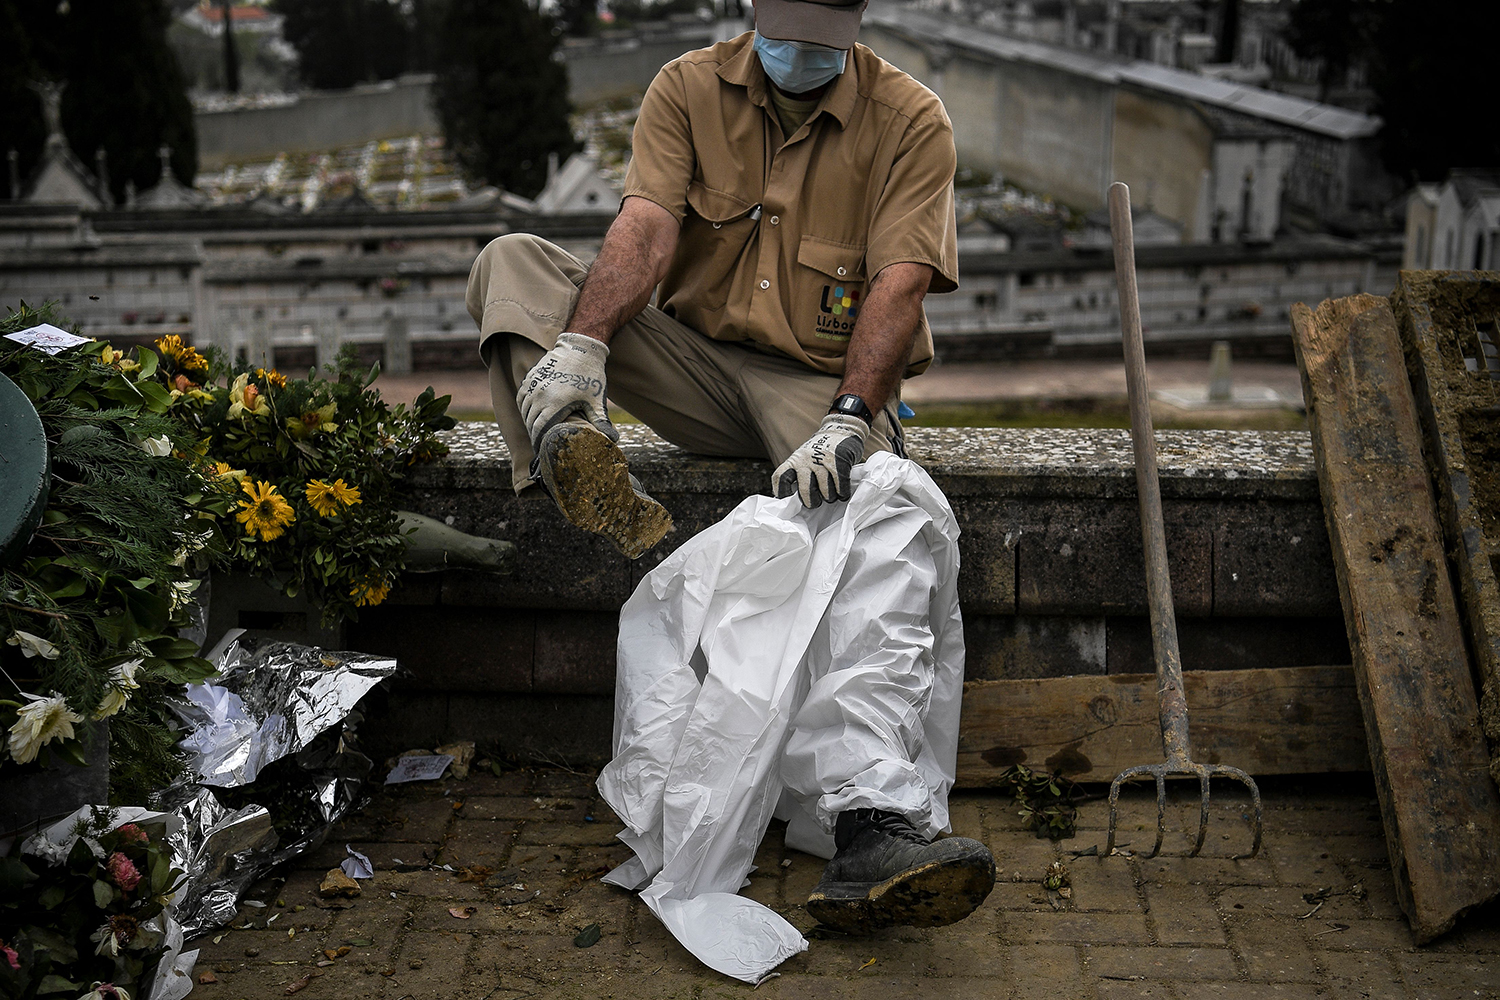 A grave digger puts on his protective suit before the burial of a COVID-19 victim at the Alto de Sao Joao cemetery in Lisbon, Portugal, on Feb. 18. PATRICIA DE MELO MOREIRA/AFP via Getty Images